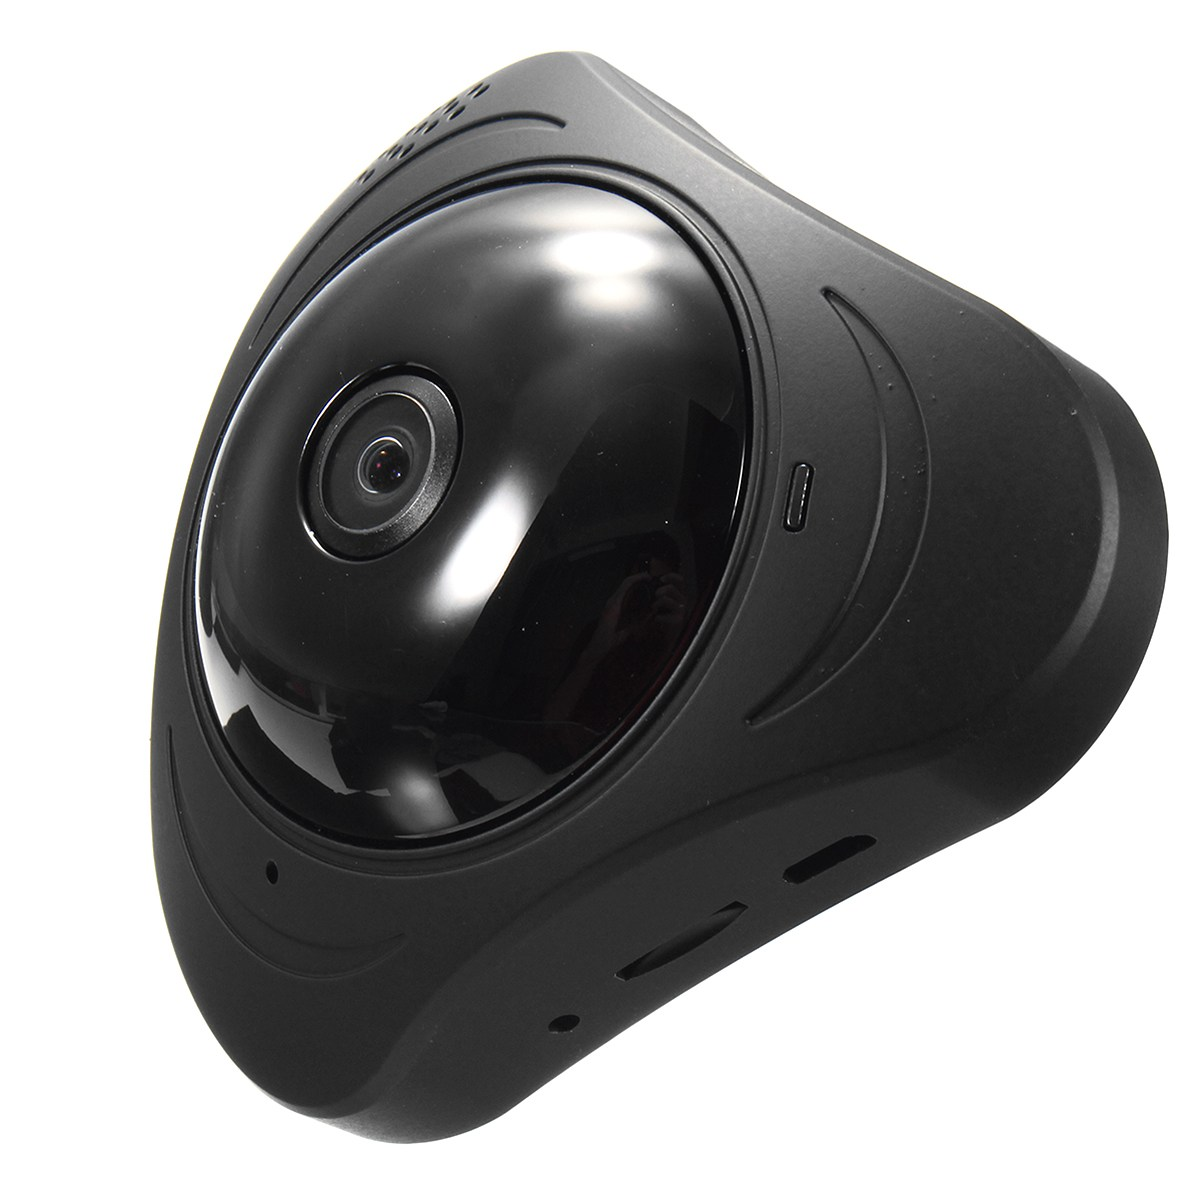 NEW Safurance 3D VR WIFI Camera 360 Degree Panoramic FIsheye 960P WIreless Indoor Home Security Safety Surveillance CCTV<br>